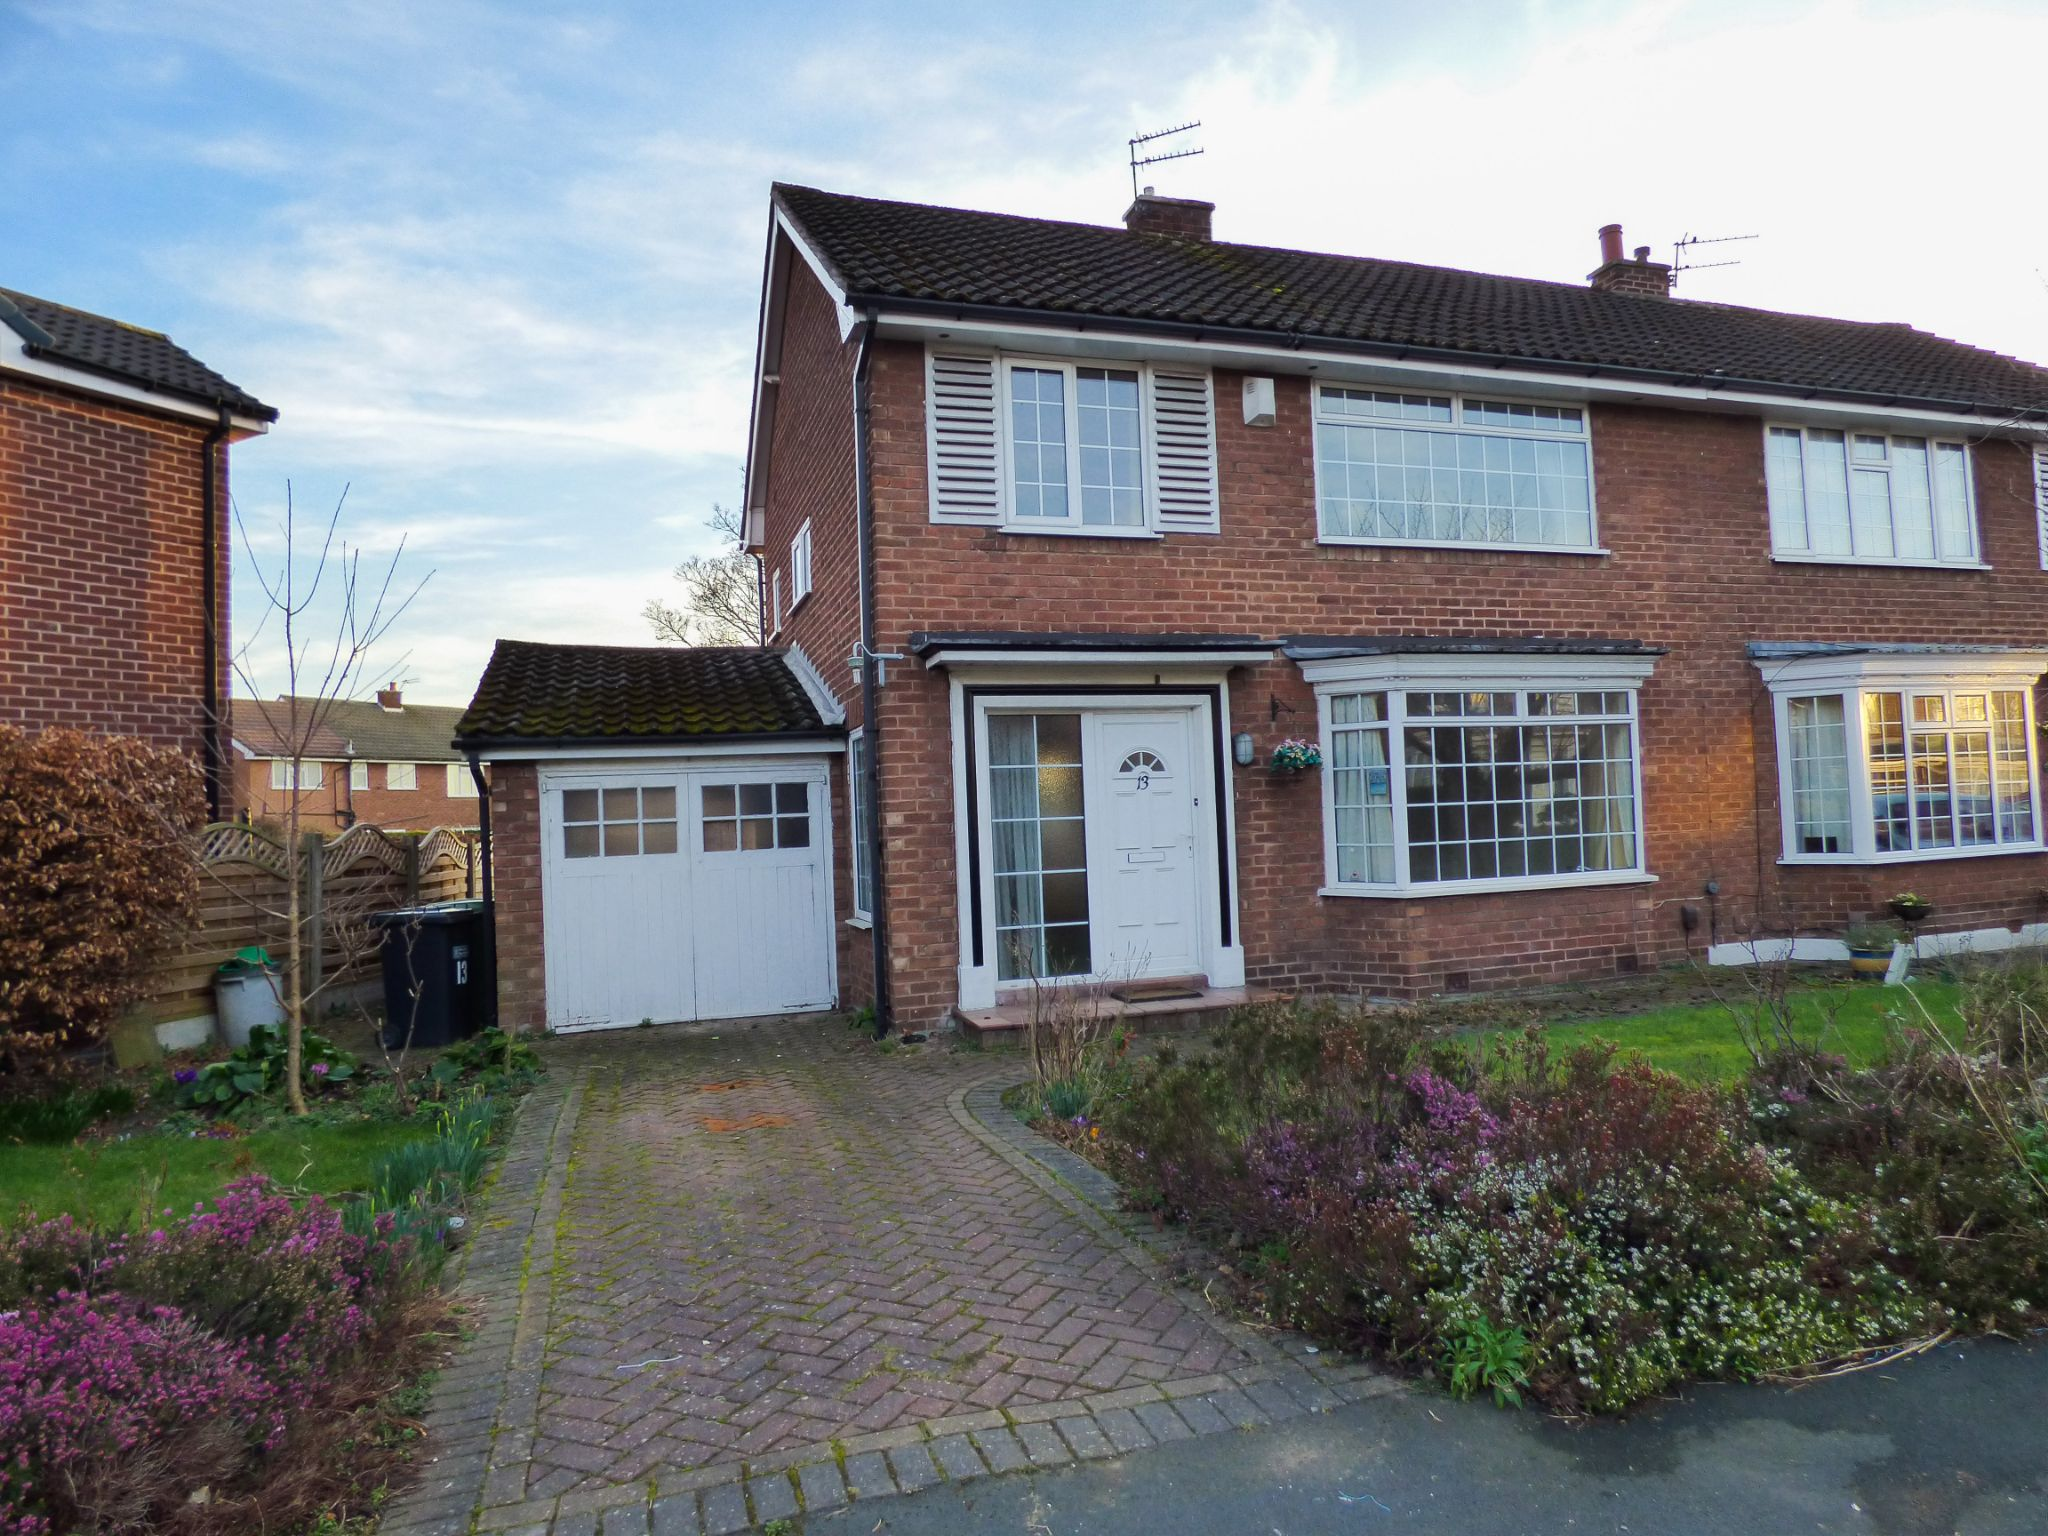 3 Bedroom Semi-detached House For Sale - 1